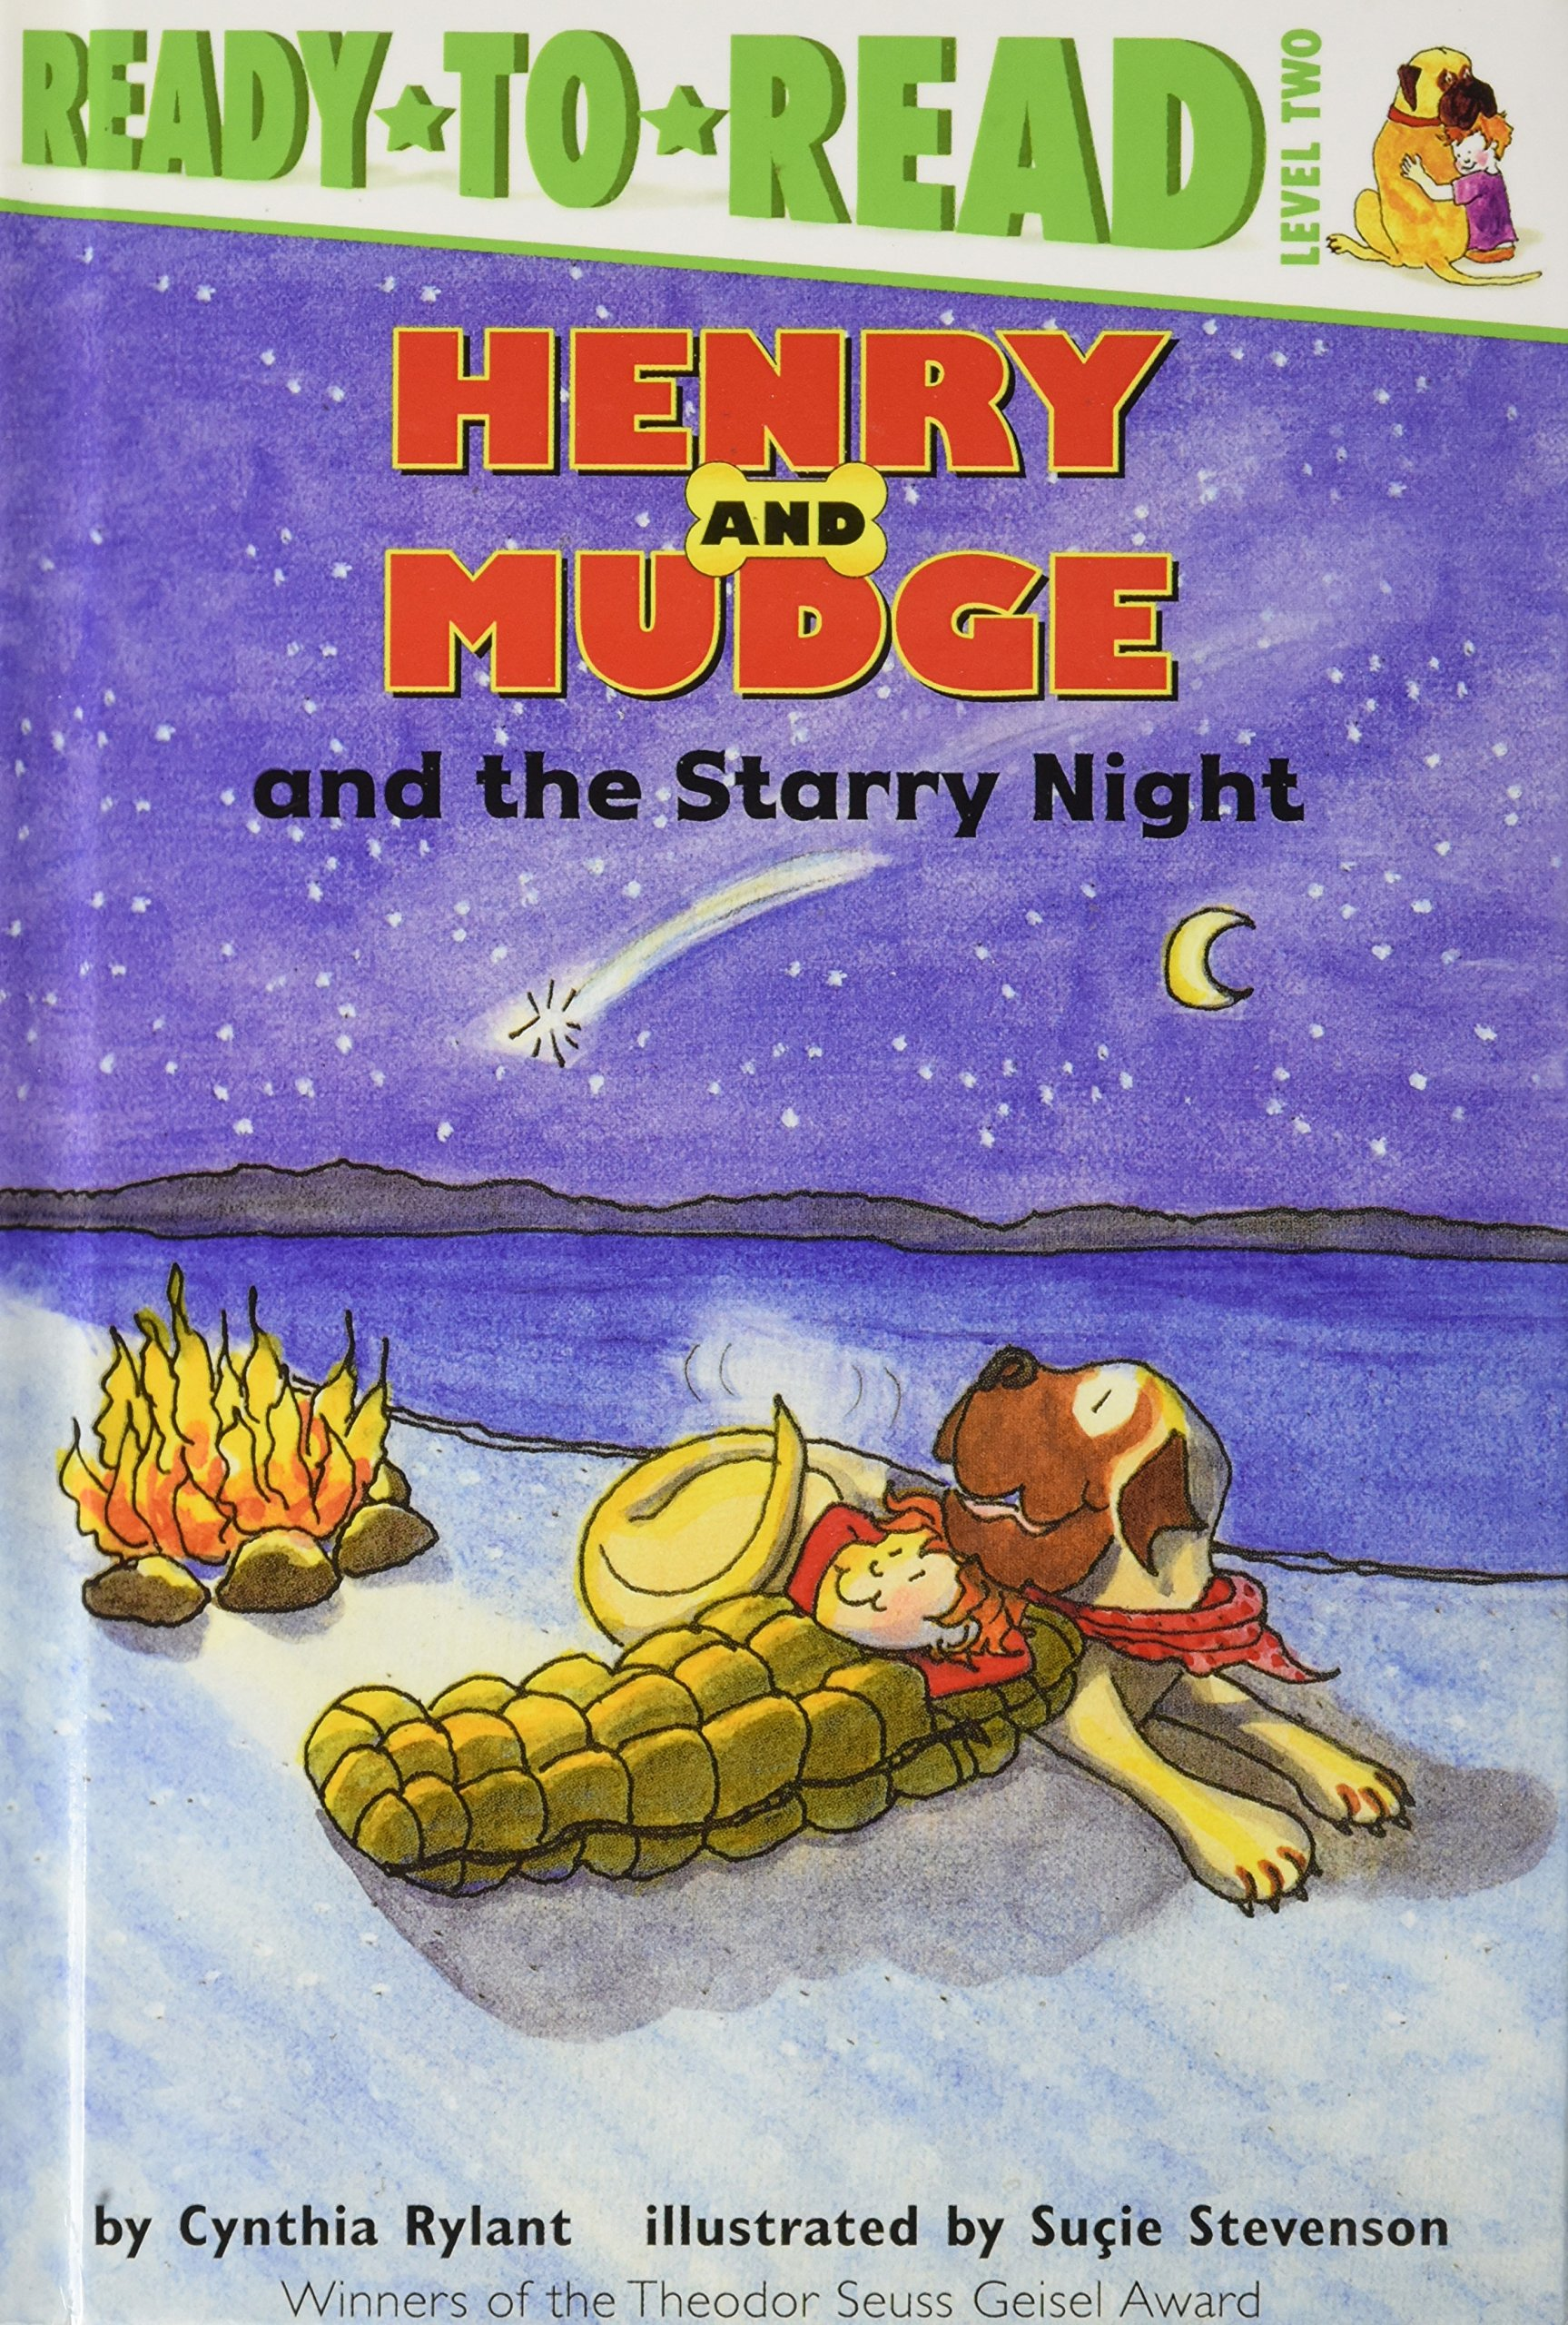 Download Henry and Mudge and the Starry Night: The Seventeenth Book of Their Adventures ebook